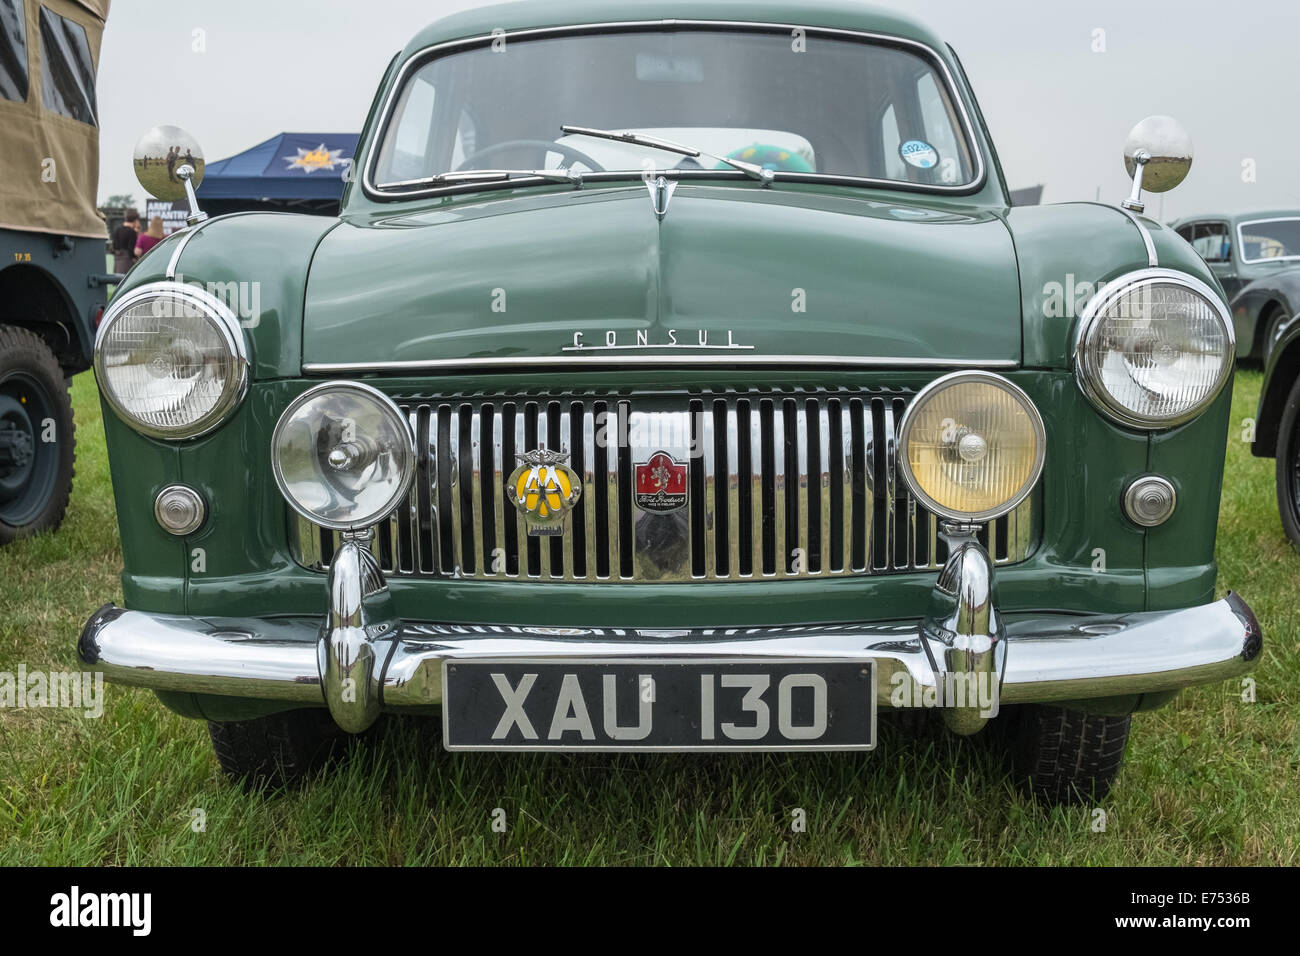 Front view of vintage Ford Consul Mark 1 motor car - Stock Image